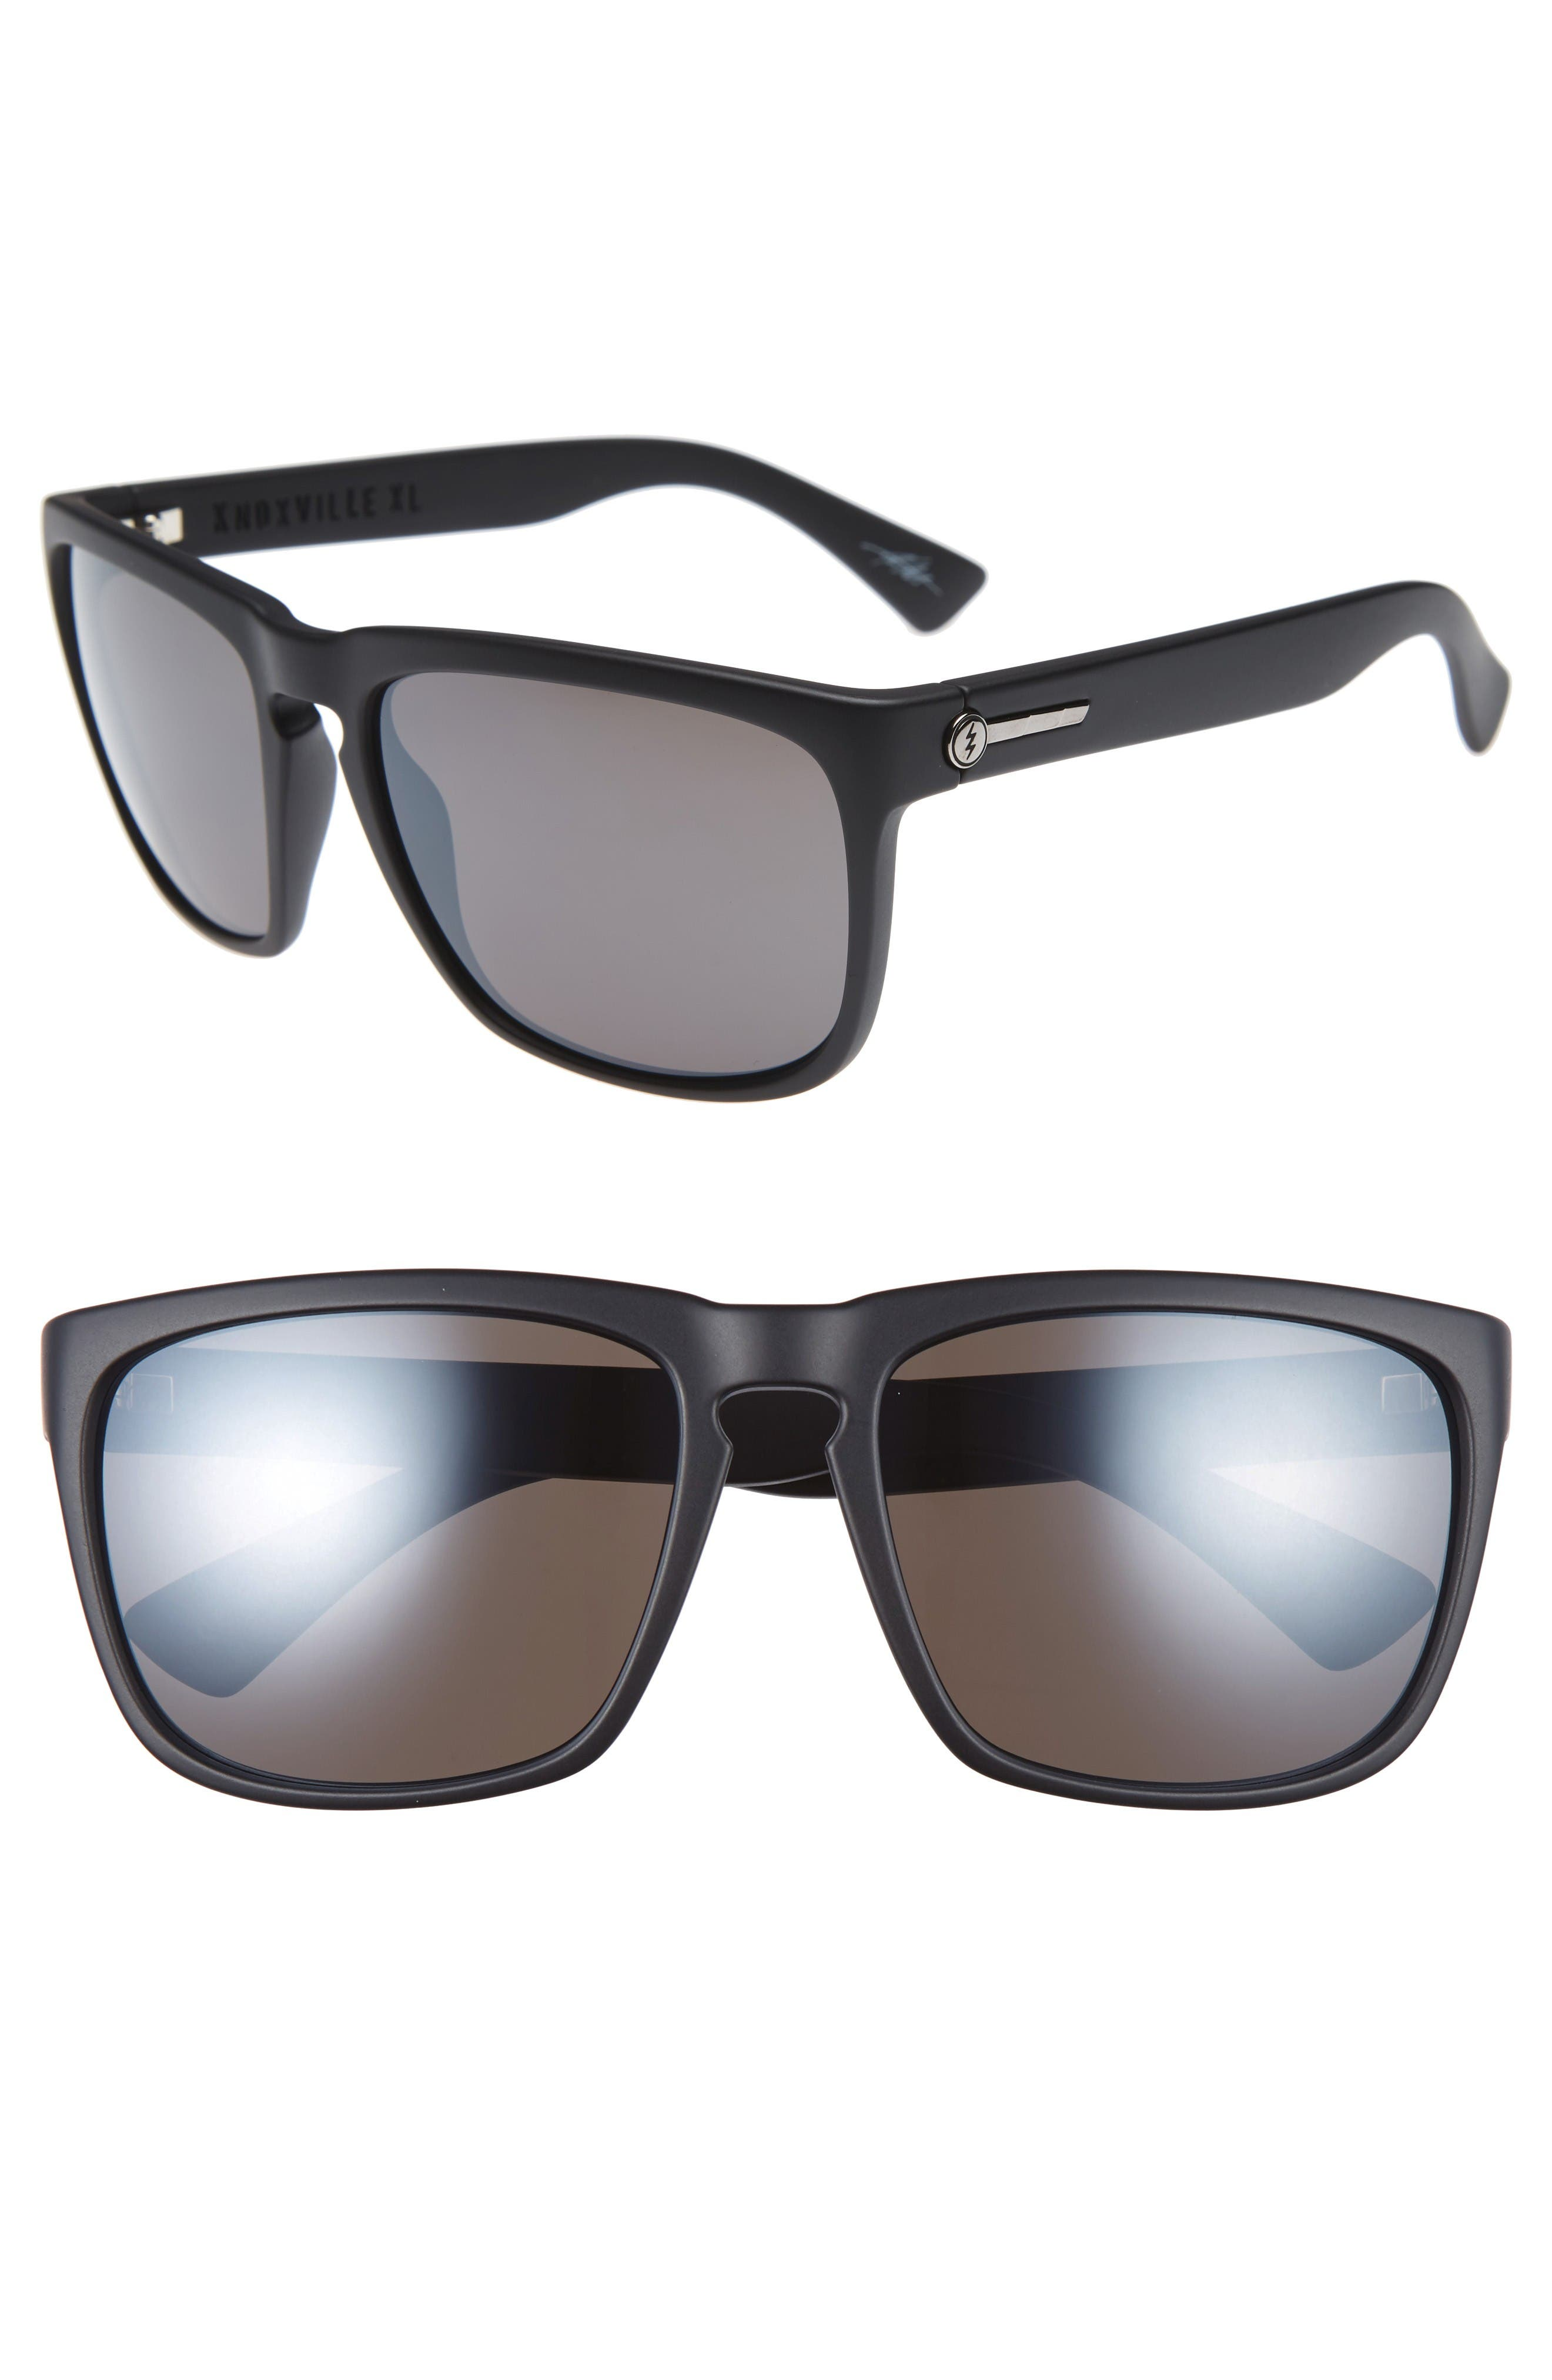 ELECTRIC Knoxville XL 61mm Sunglasses